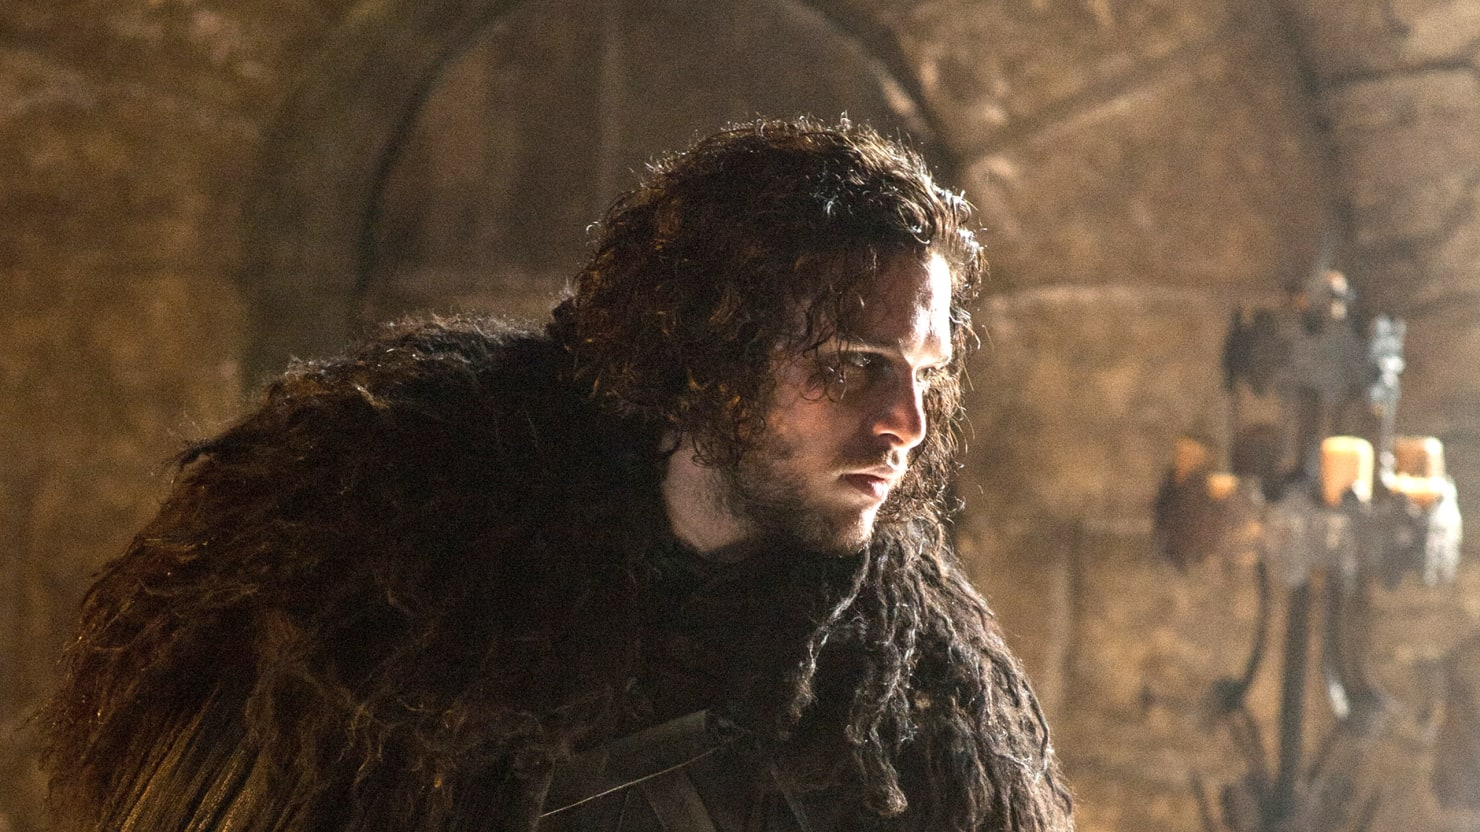 Game of Thrones' Jon Snow Knows Plenty: Kit Harington on Sex, Beheadings, and the Obama Link